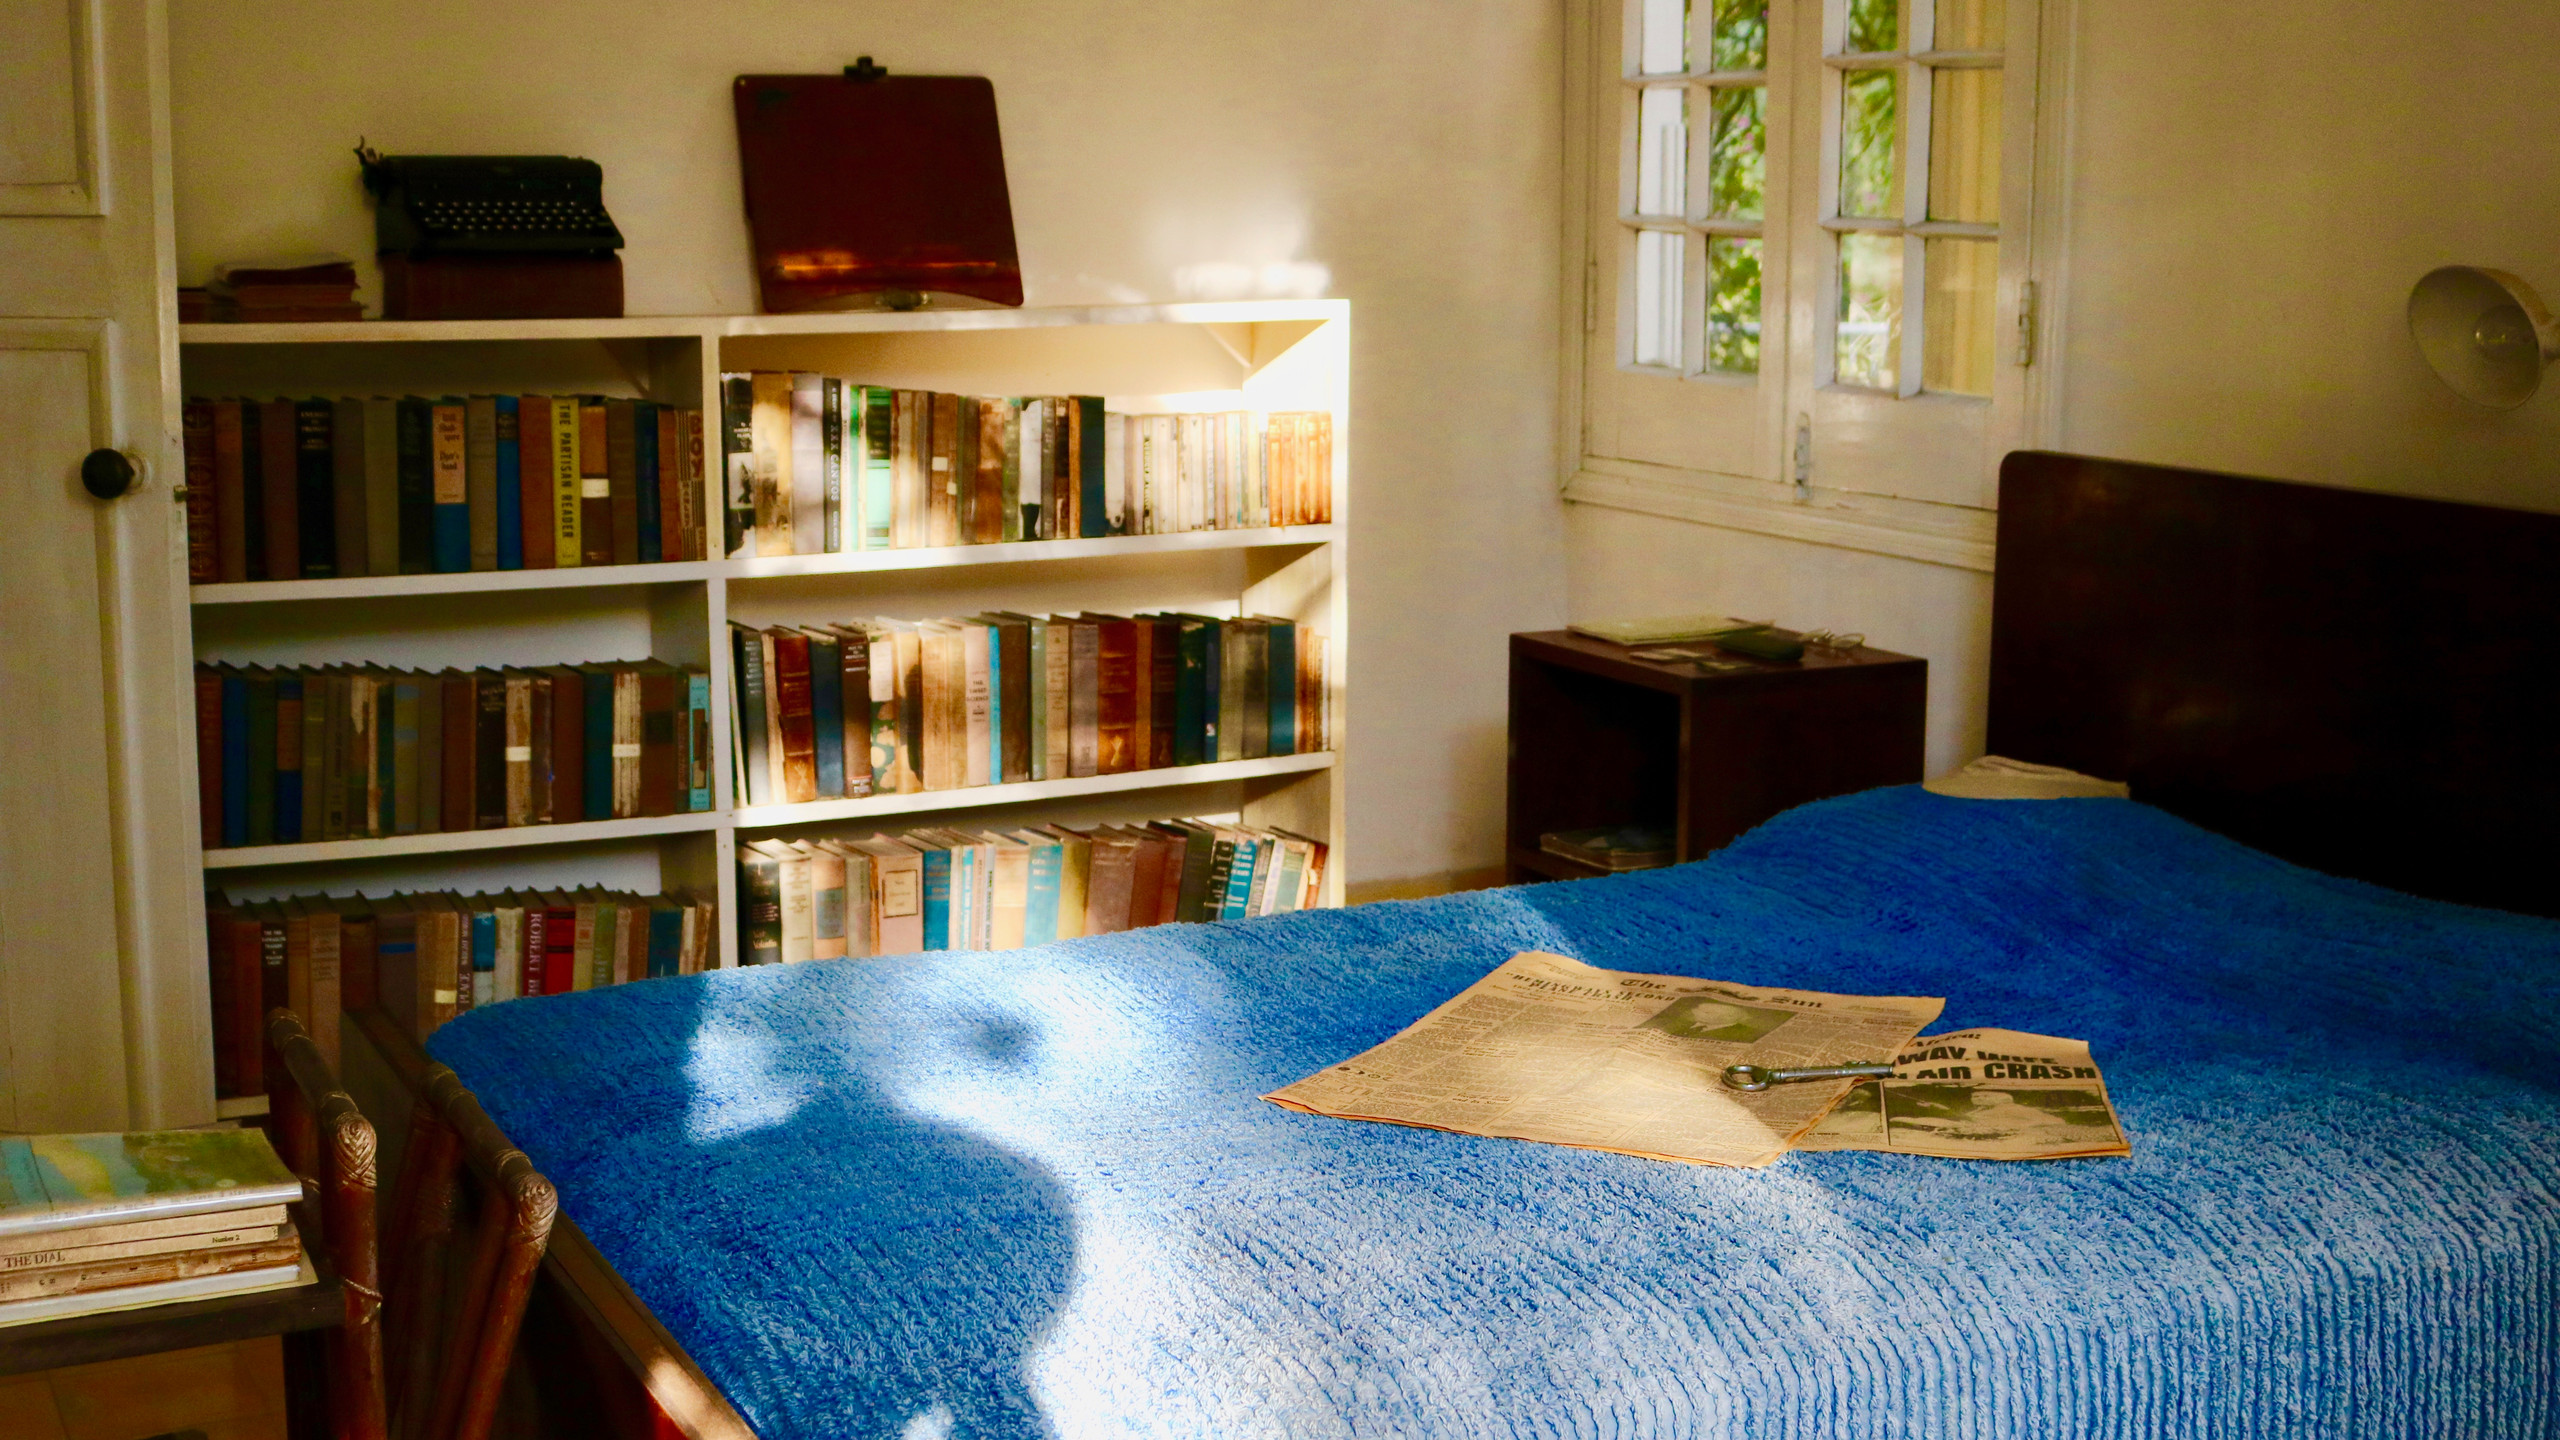 Guest room with a bed with a blue blanket and old newspaper on it at Ernest Hemingway's Finca Vigia.